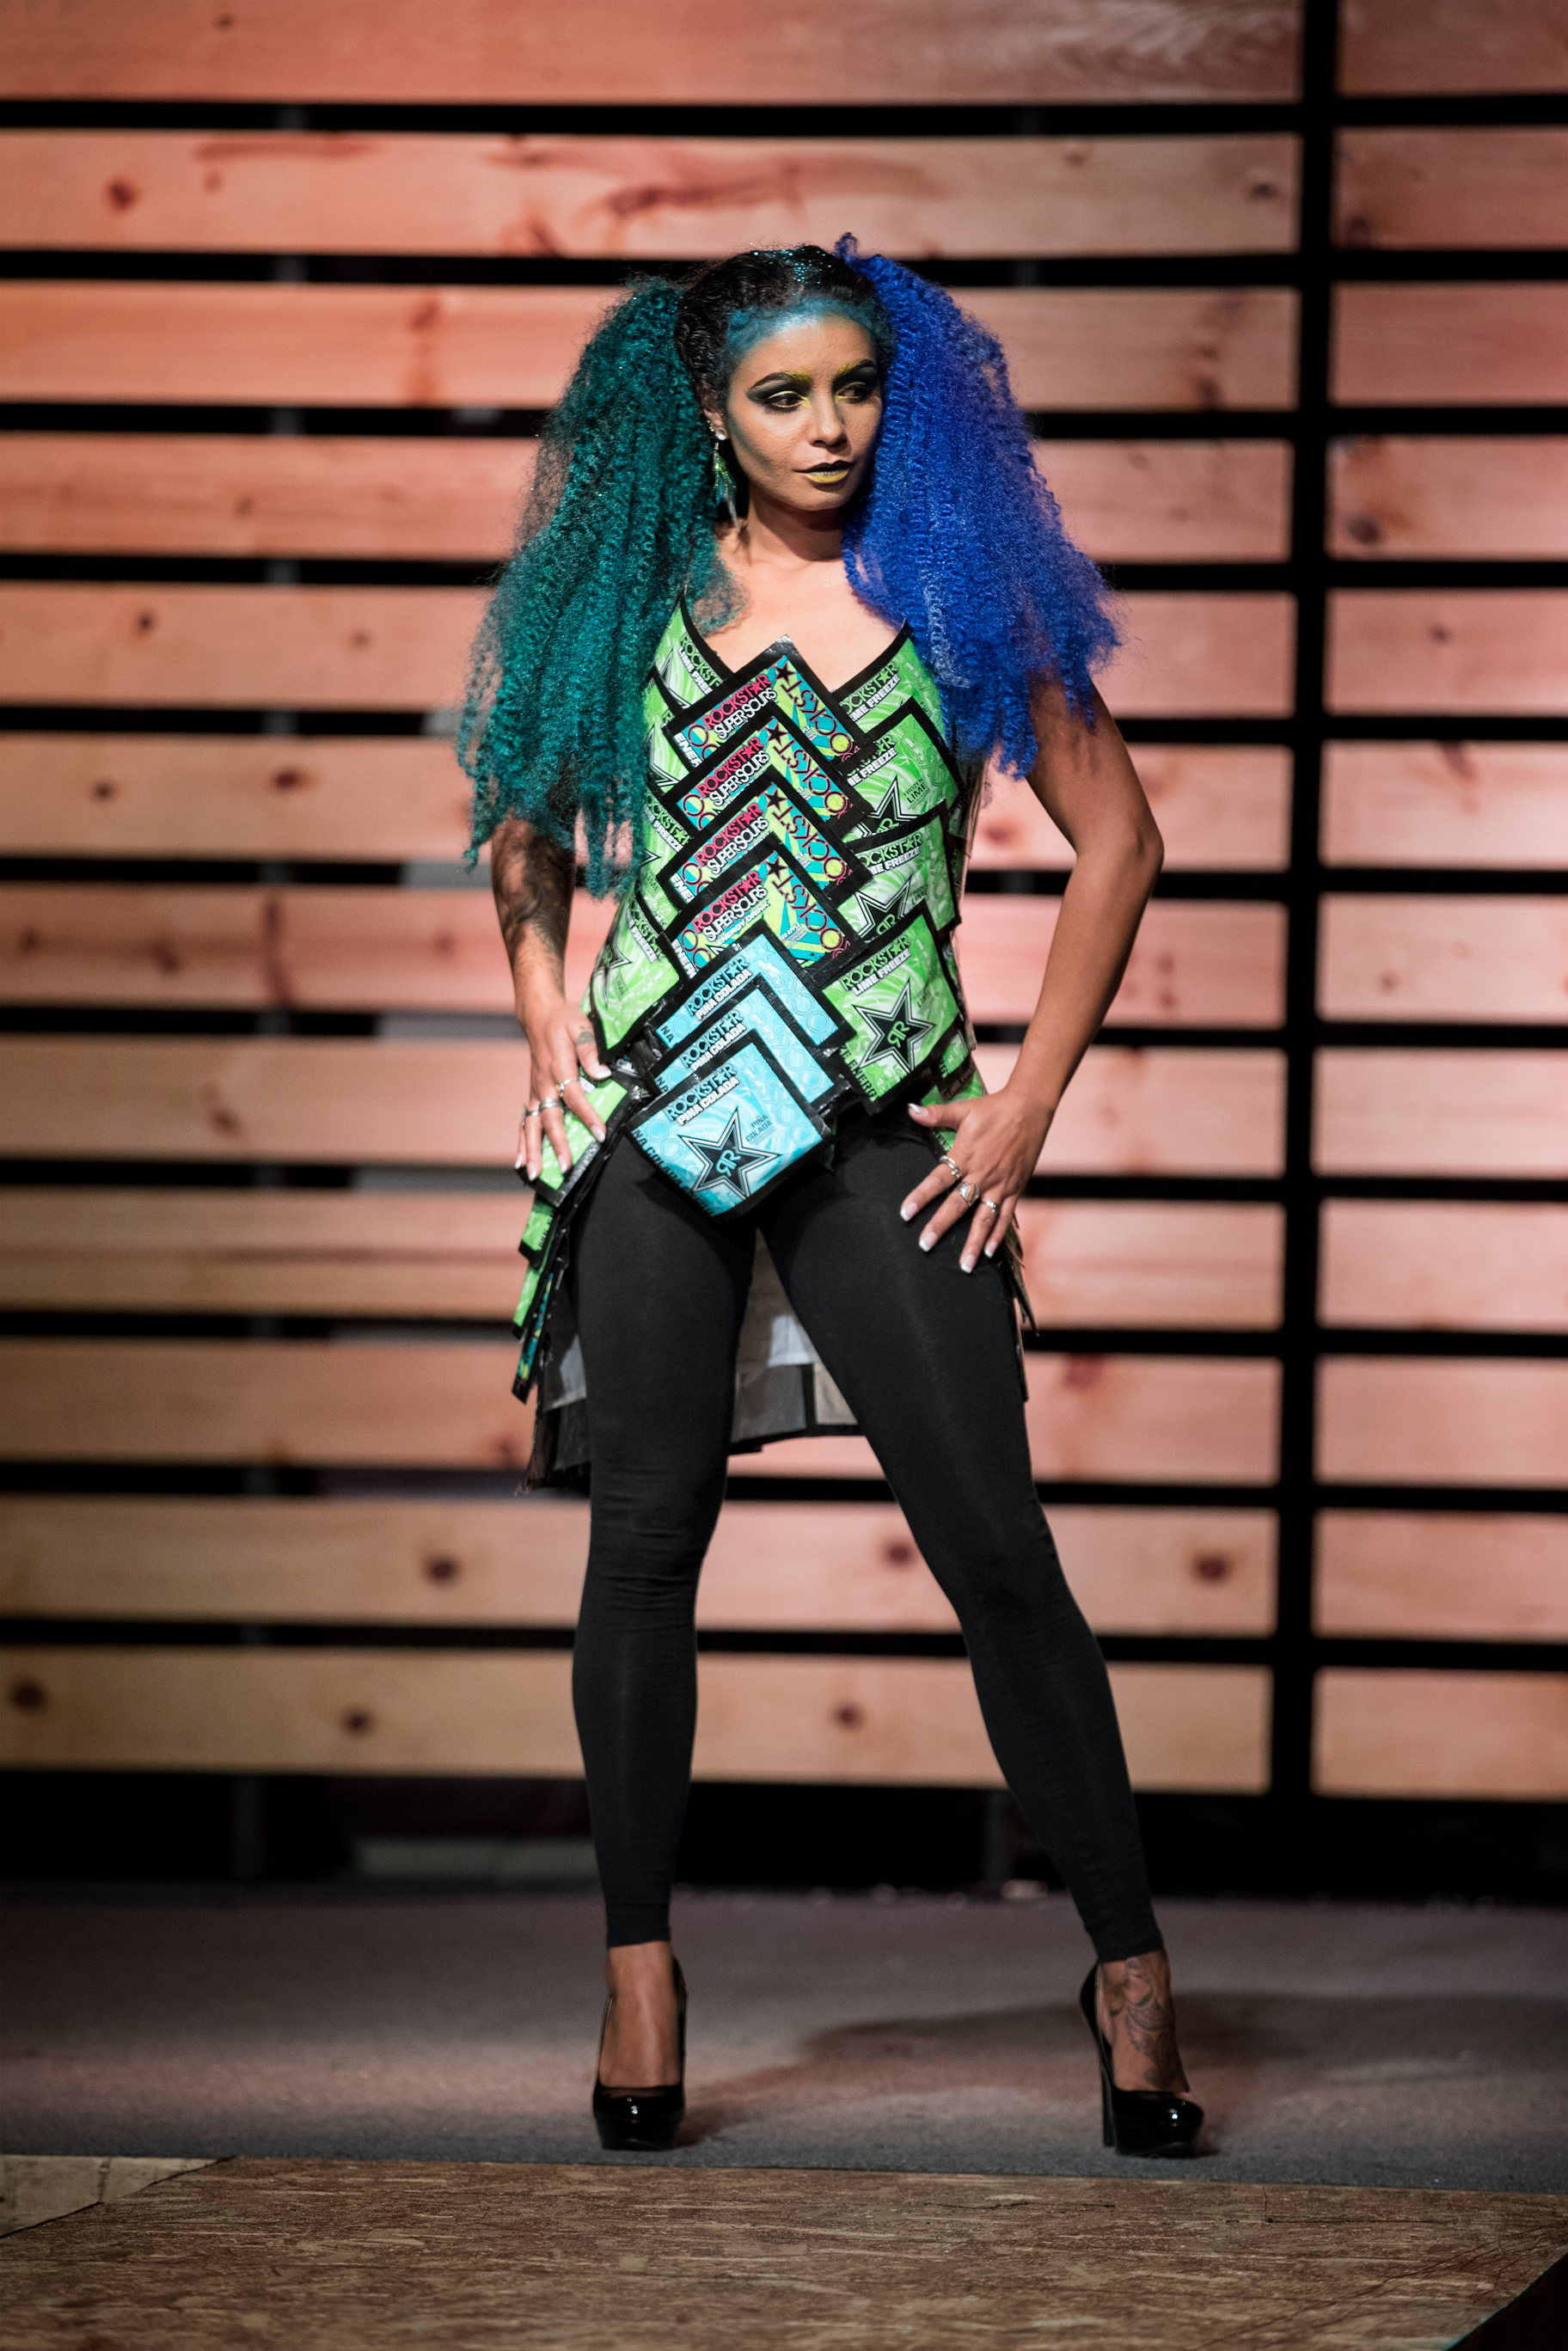 Mission Wear Upcycled Patchwork Fashion Show - 082.jpg